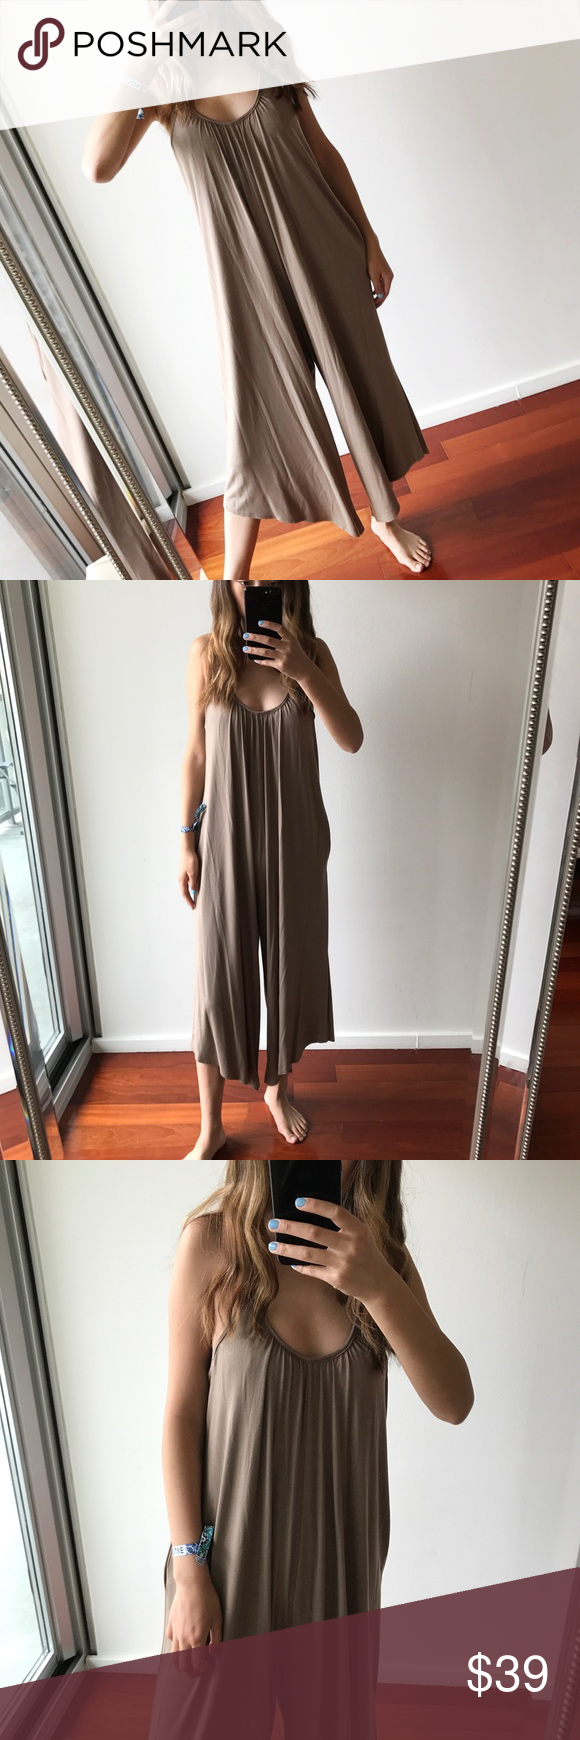 """Cappuccino Buttery Draped Jumpsuit Doesn't get more comfortable than this. Lounge around in this flow-y jumpsuit all day, and you might even be tempted to wear it to bed… This piece is easy to slip on and best paired with flip flops/flats/sandals for comfort OR simple heels for added height and panache.  -Buttery soft touch -Drapes well -Scoop neck detail -95% rayon, 5% spandex -Measurements of a S for reference: 15"""" pit to pit, 47"""" shoulder to hem 1"""" difference all around, for all sizes…"""